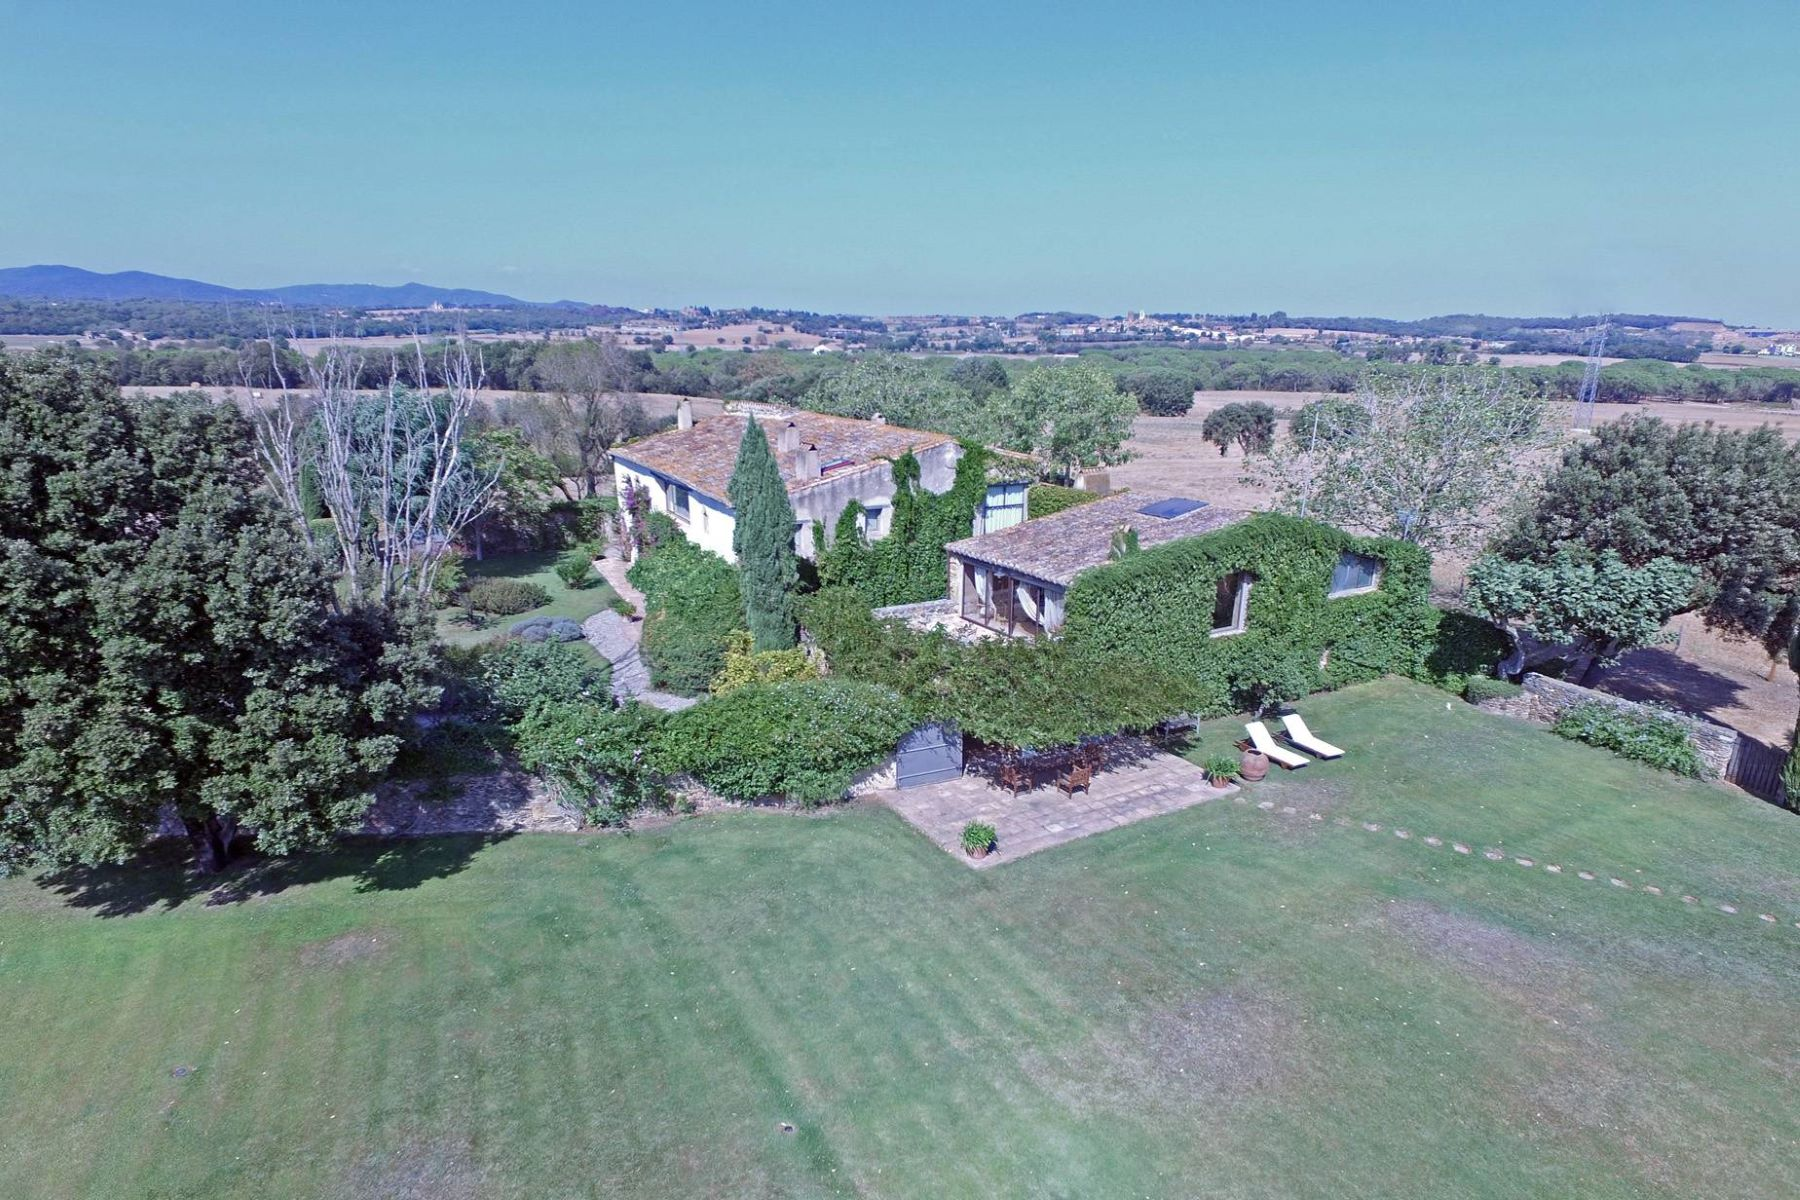 Single Family Home for Sale at Beautiful farmhouse in the heart of the Emporda Other Spain, Other Areas In Spain, 17001 Spain